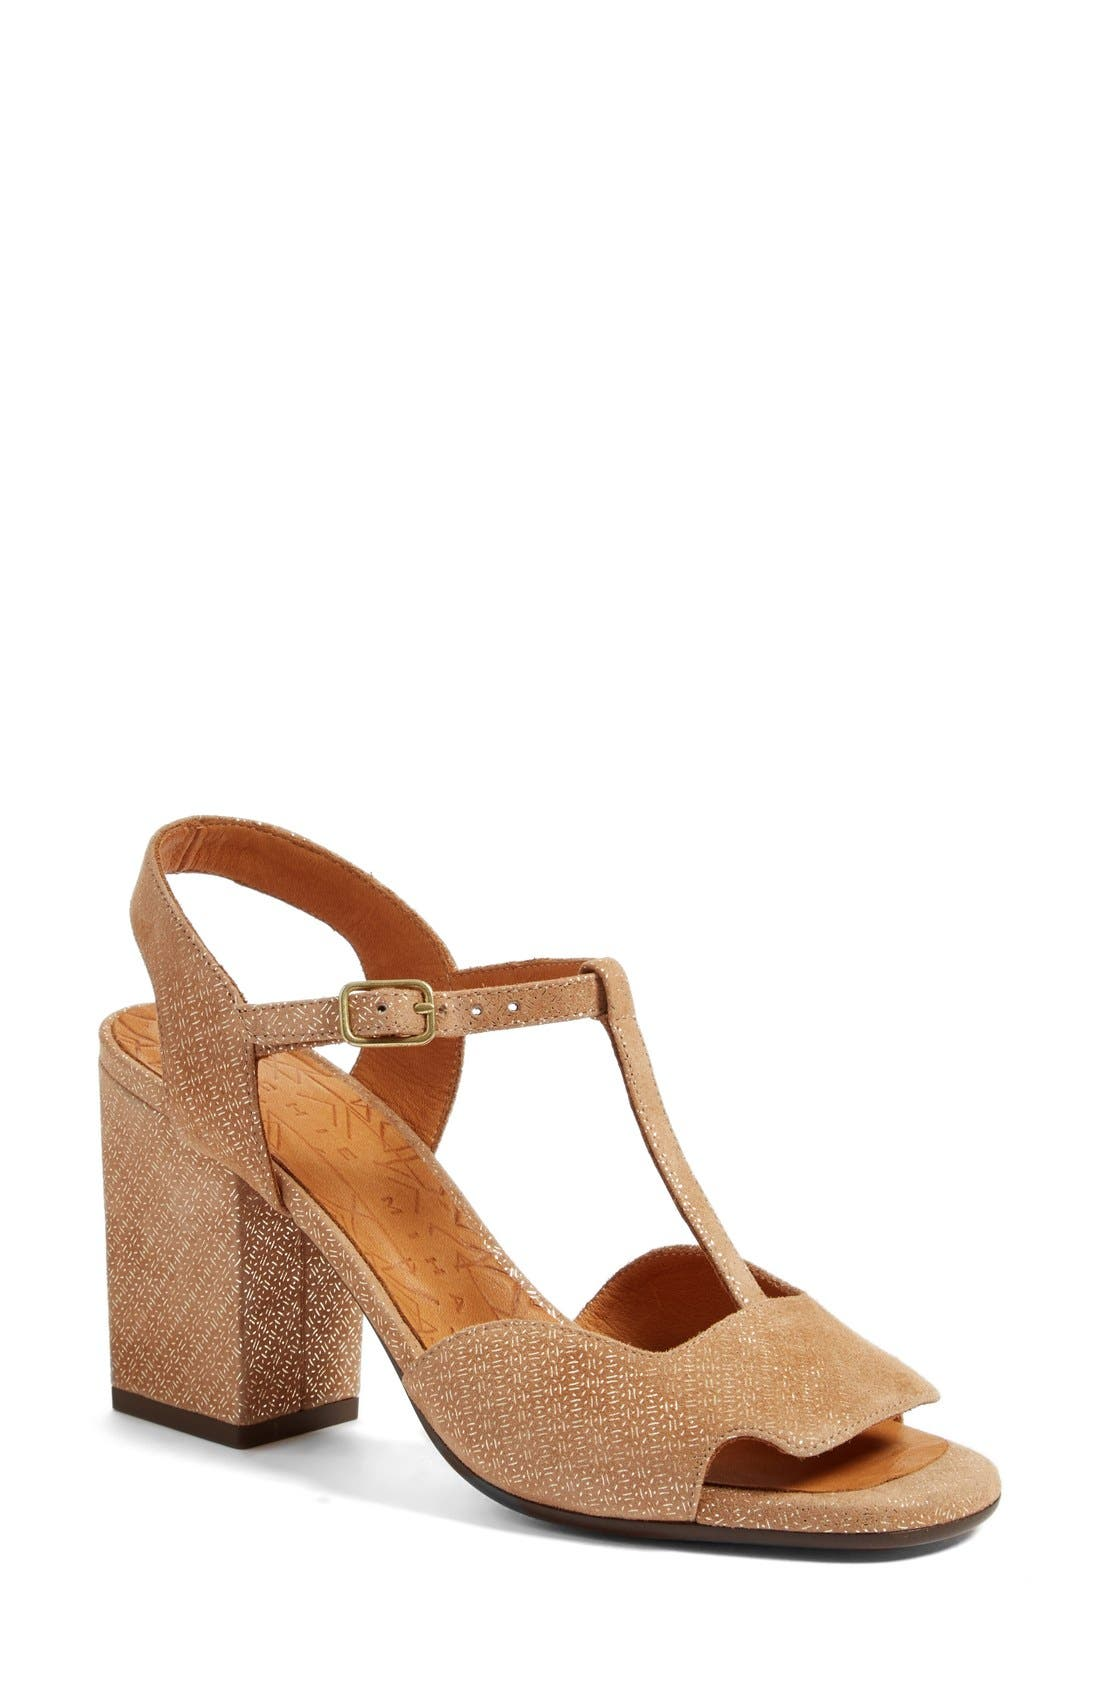 Birthe T-Strap Sandal,                         Main,                         color, 250